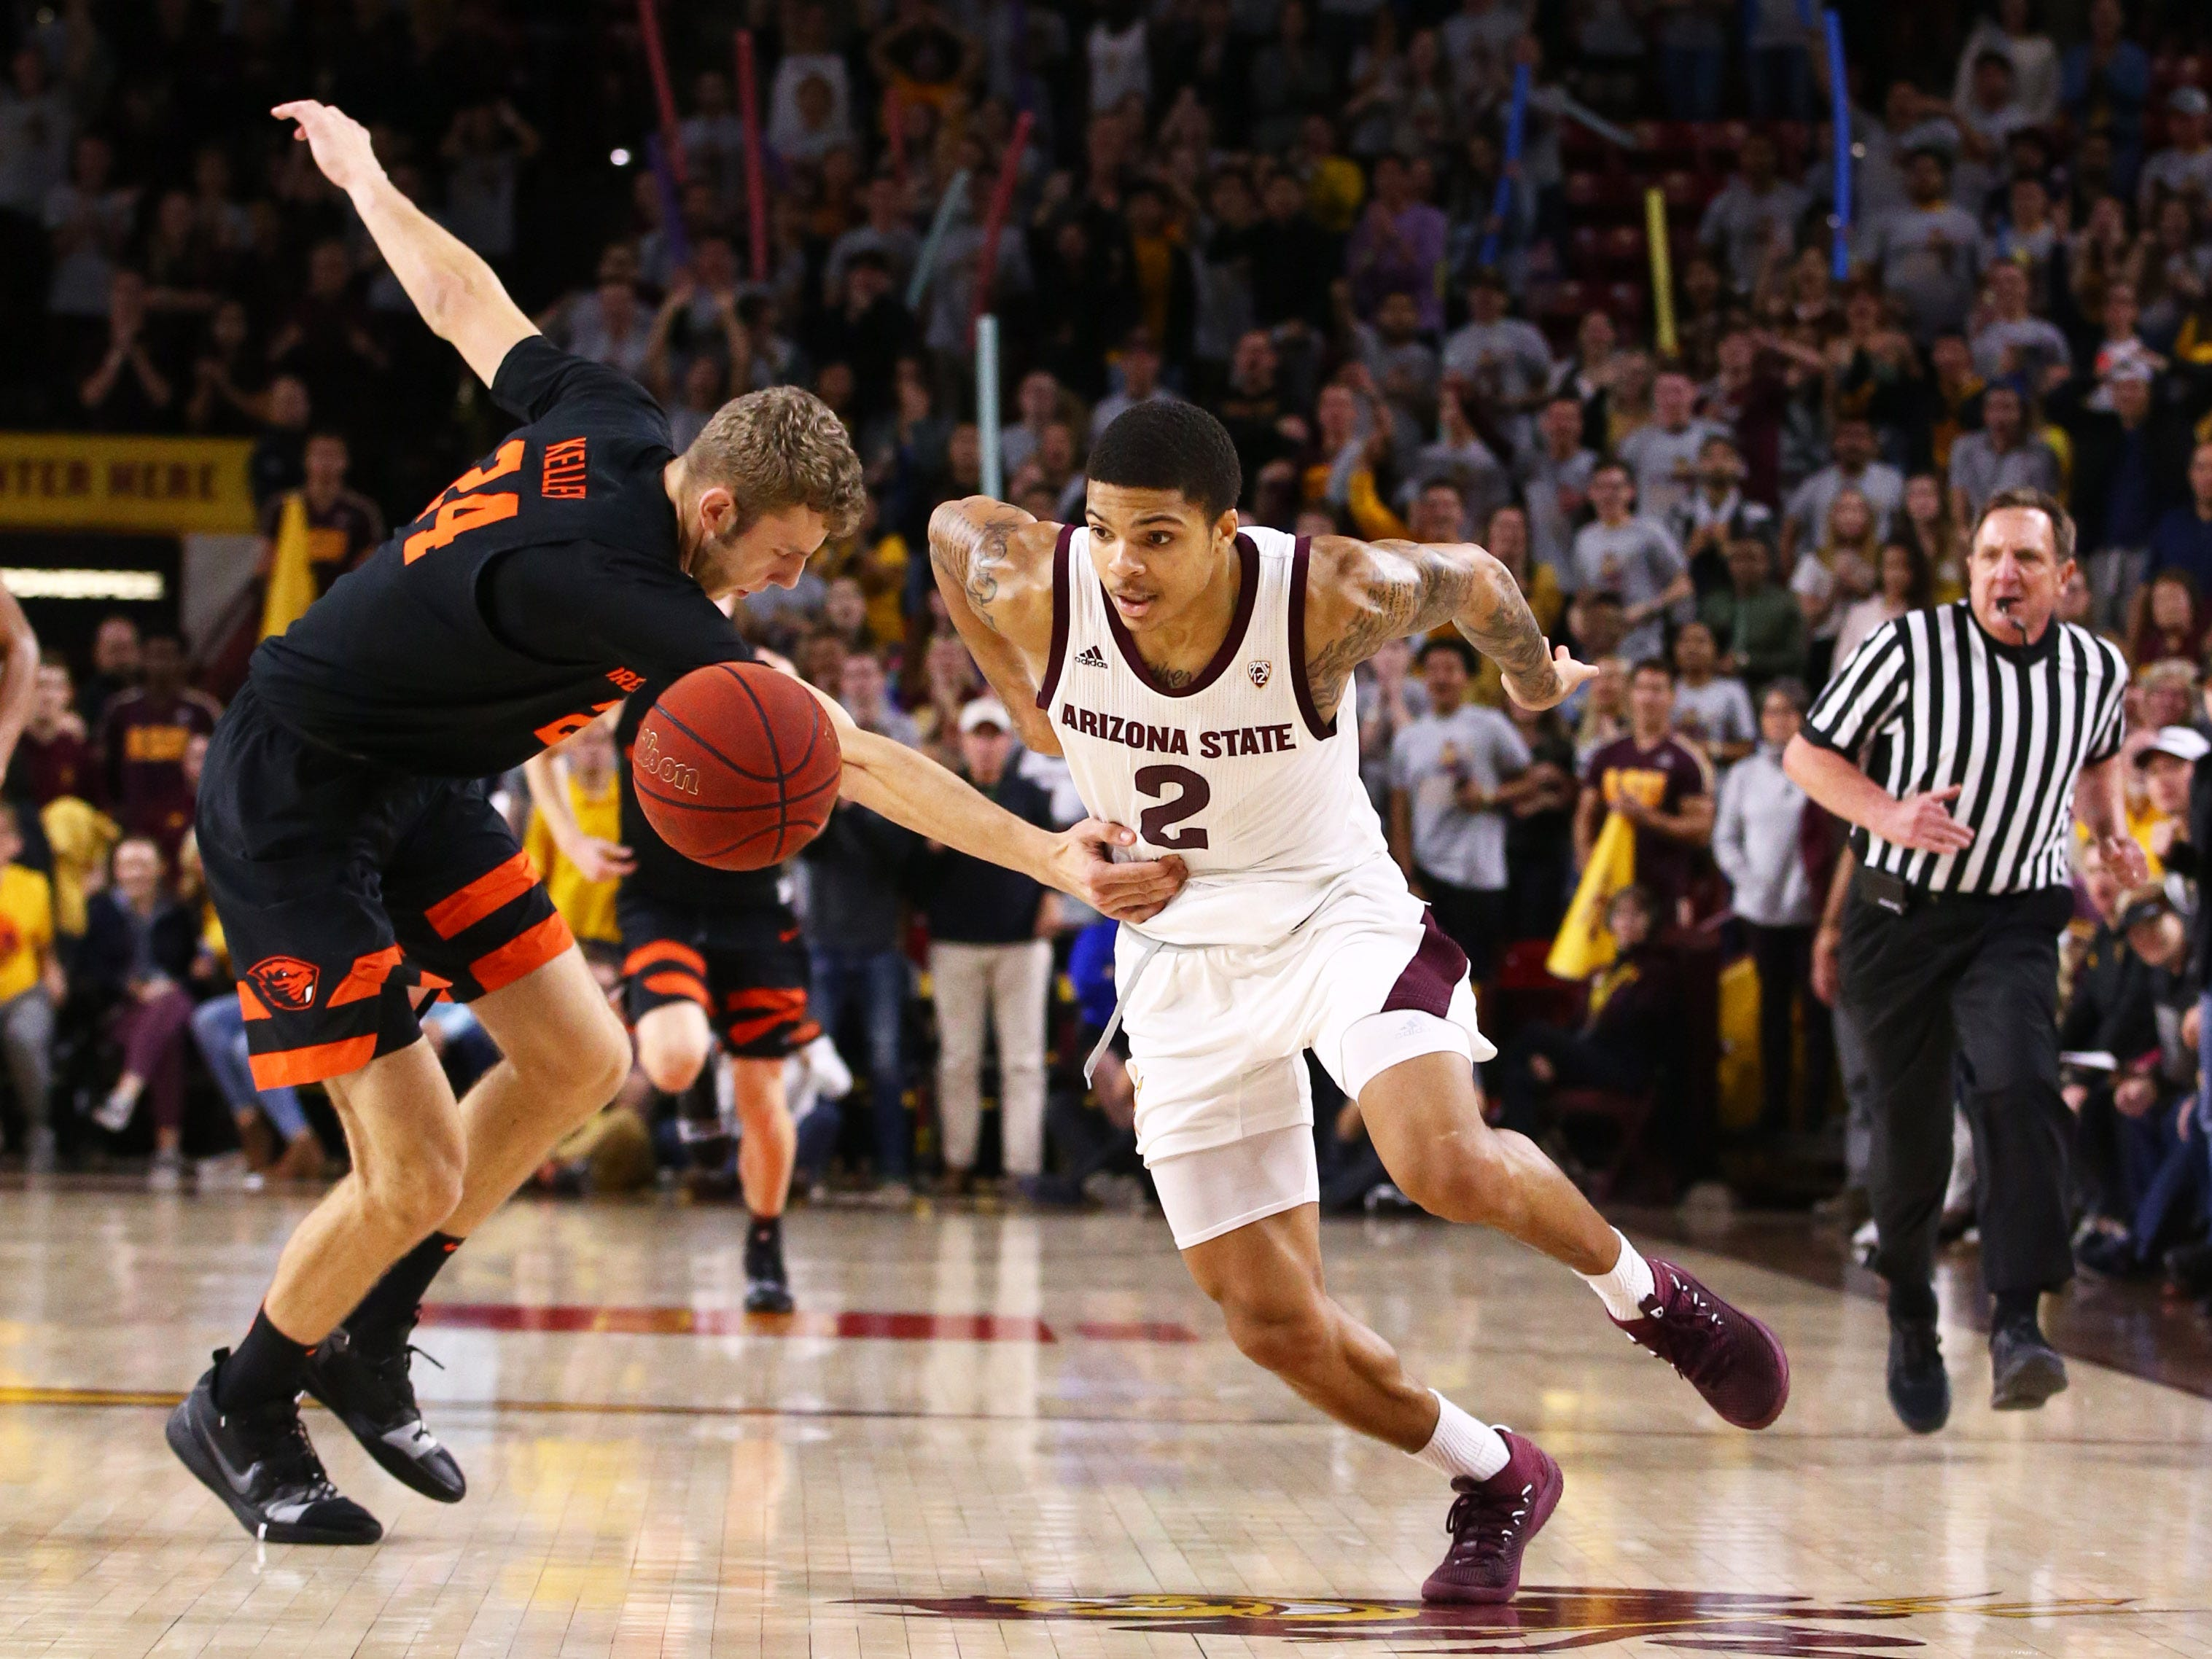 Arizona State Sun Devils guard Rob Edwards is fouled by Oregon State Beavers' Kylor Kelley in the second half on Jan. 17 at Wells Fargo Arena in Tempe.